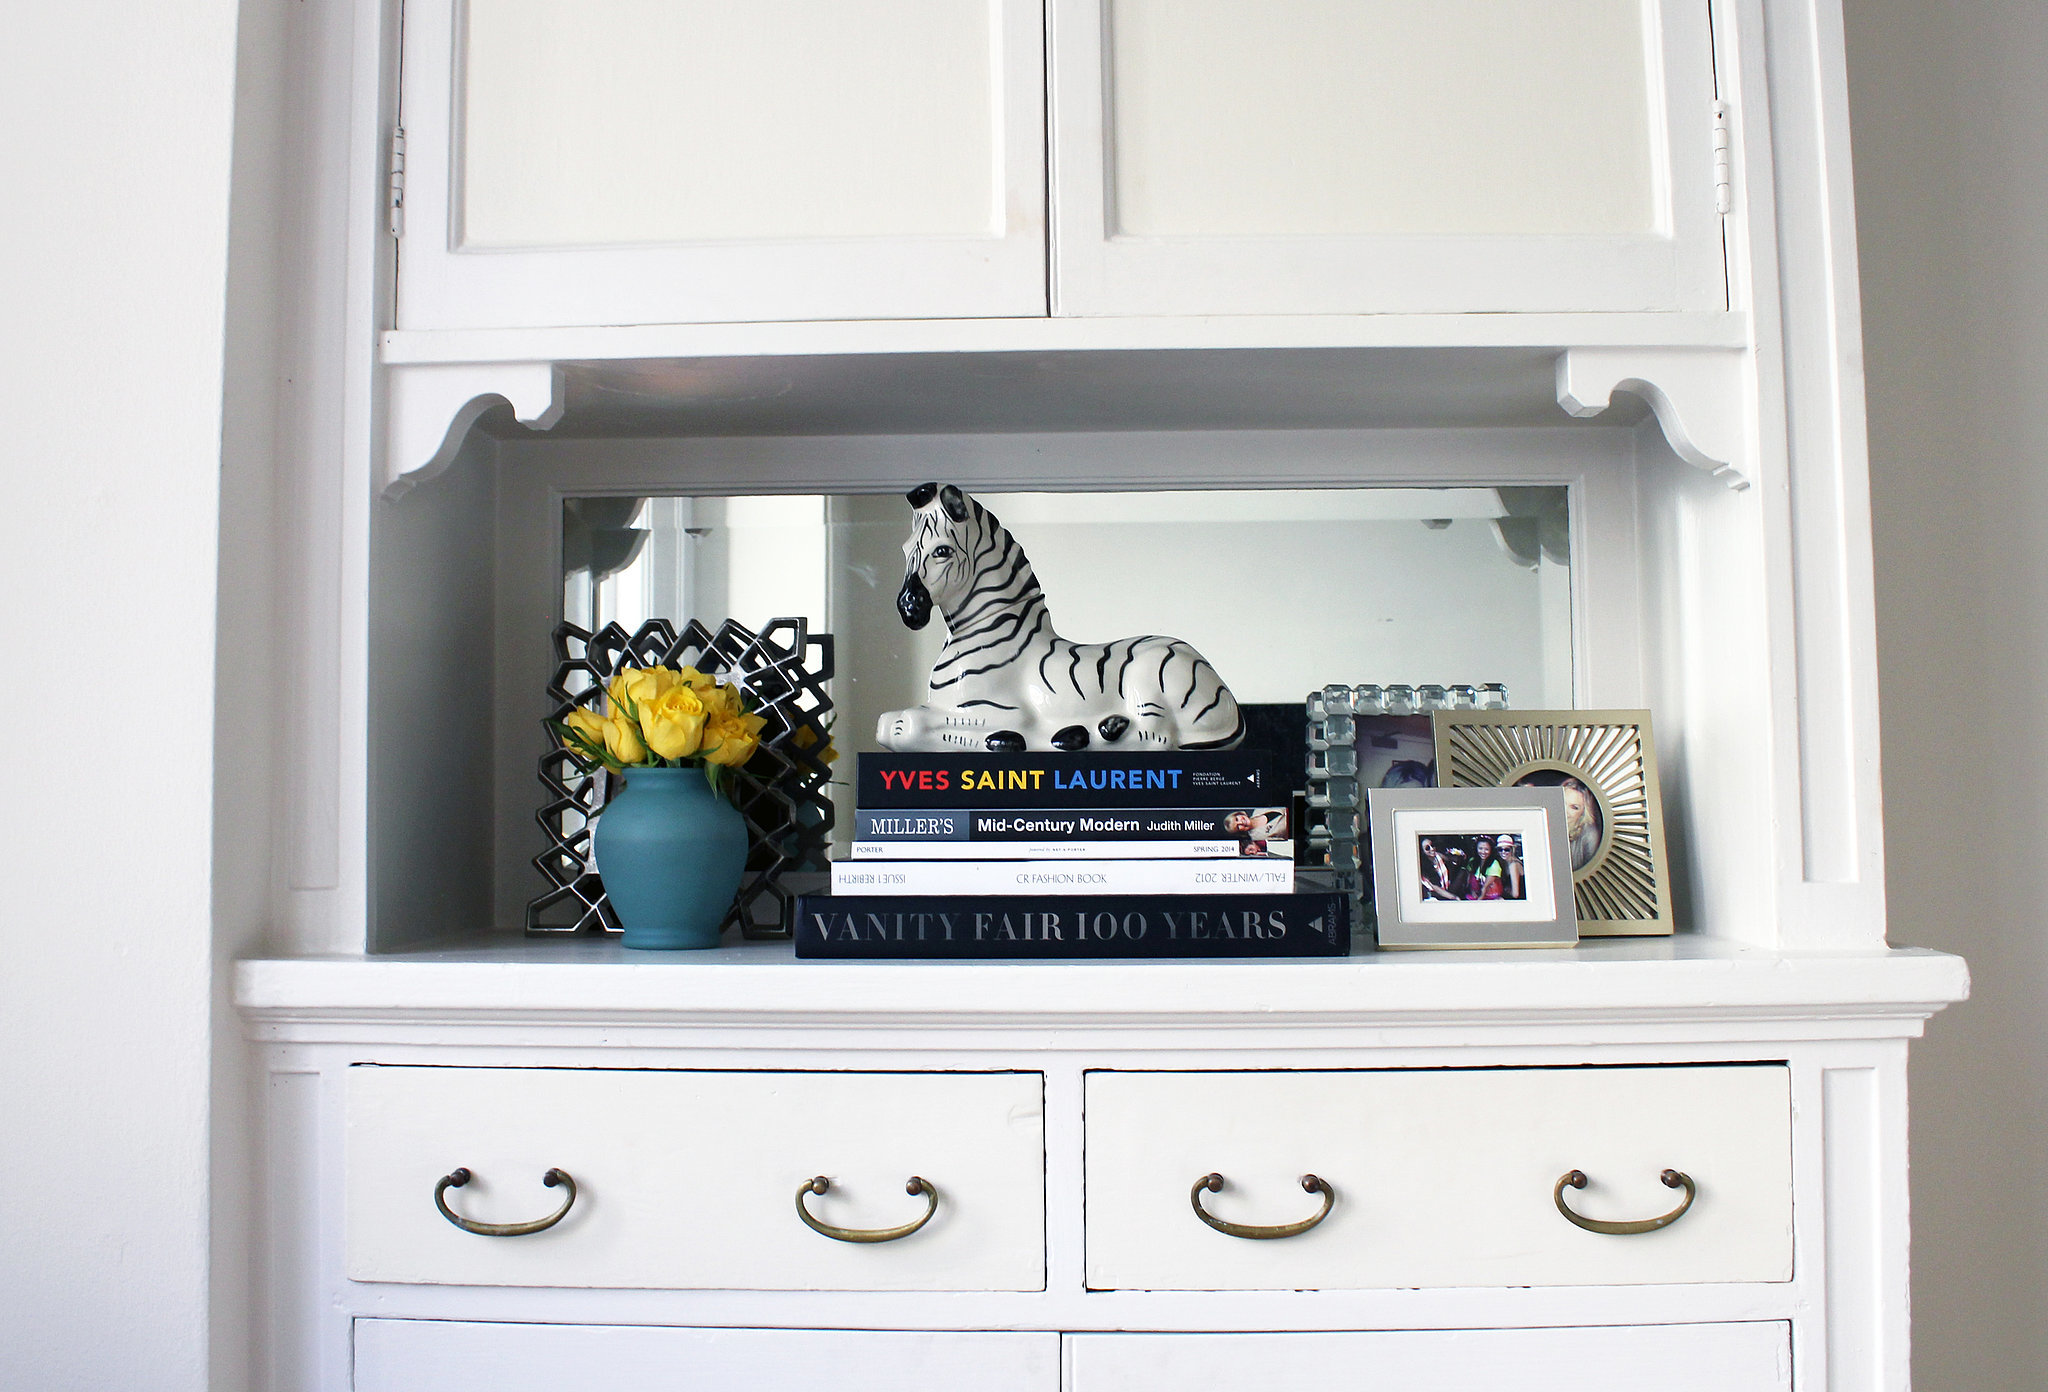 Can you believe this zebra is actually a whiskey decanter? Looks like it's right at home in the middle of those timeless stacked books and frames.